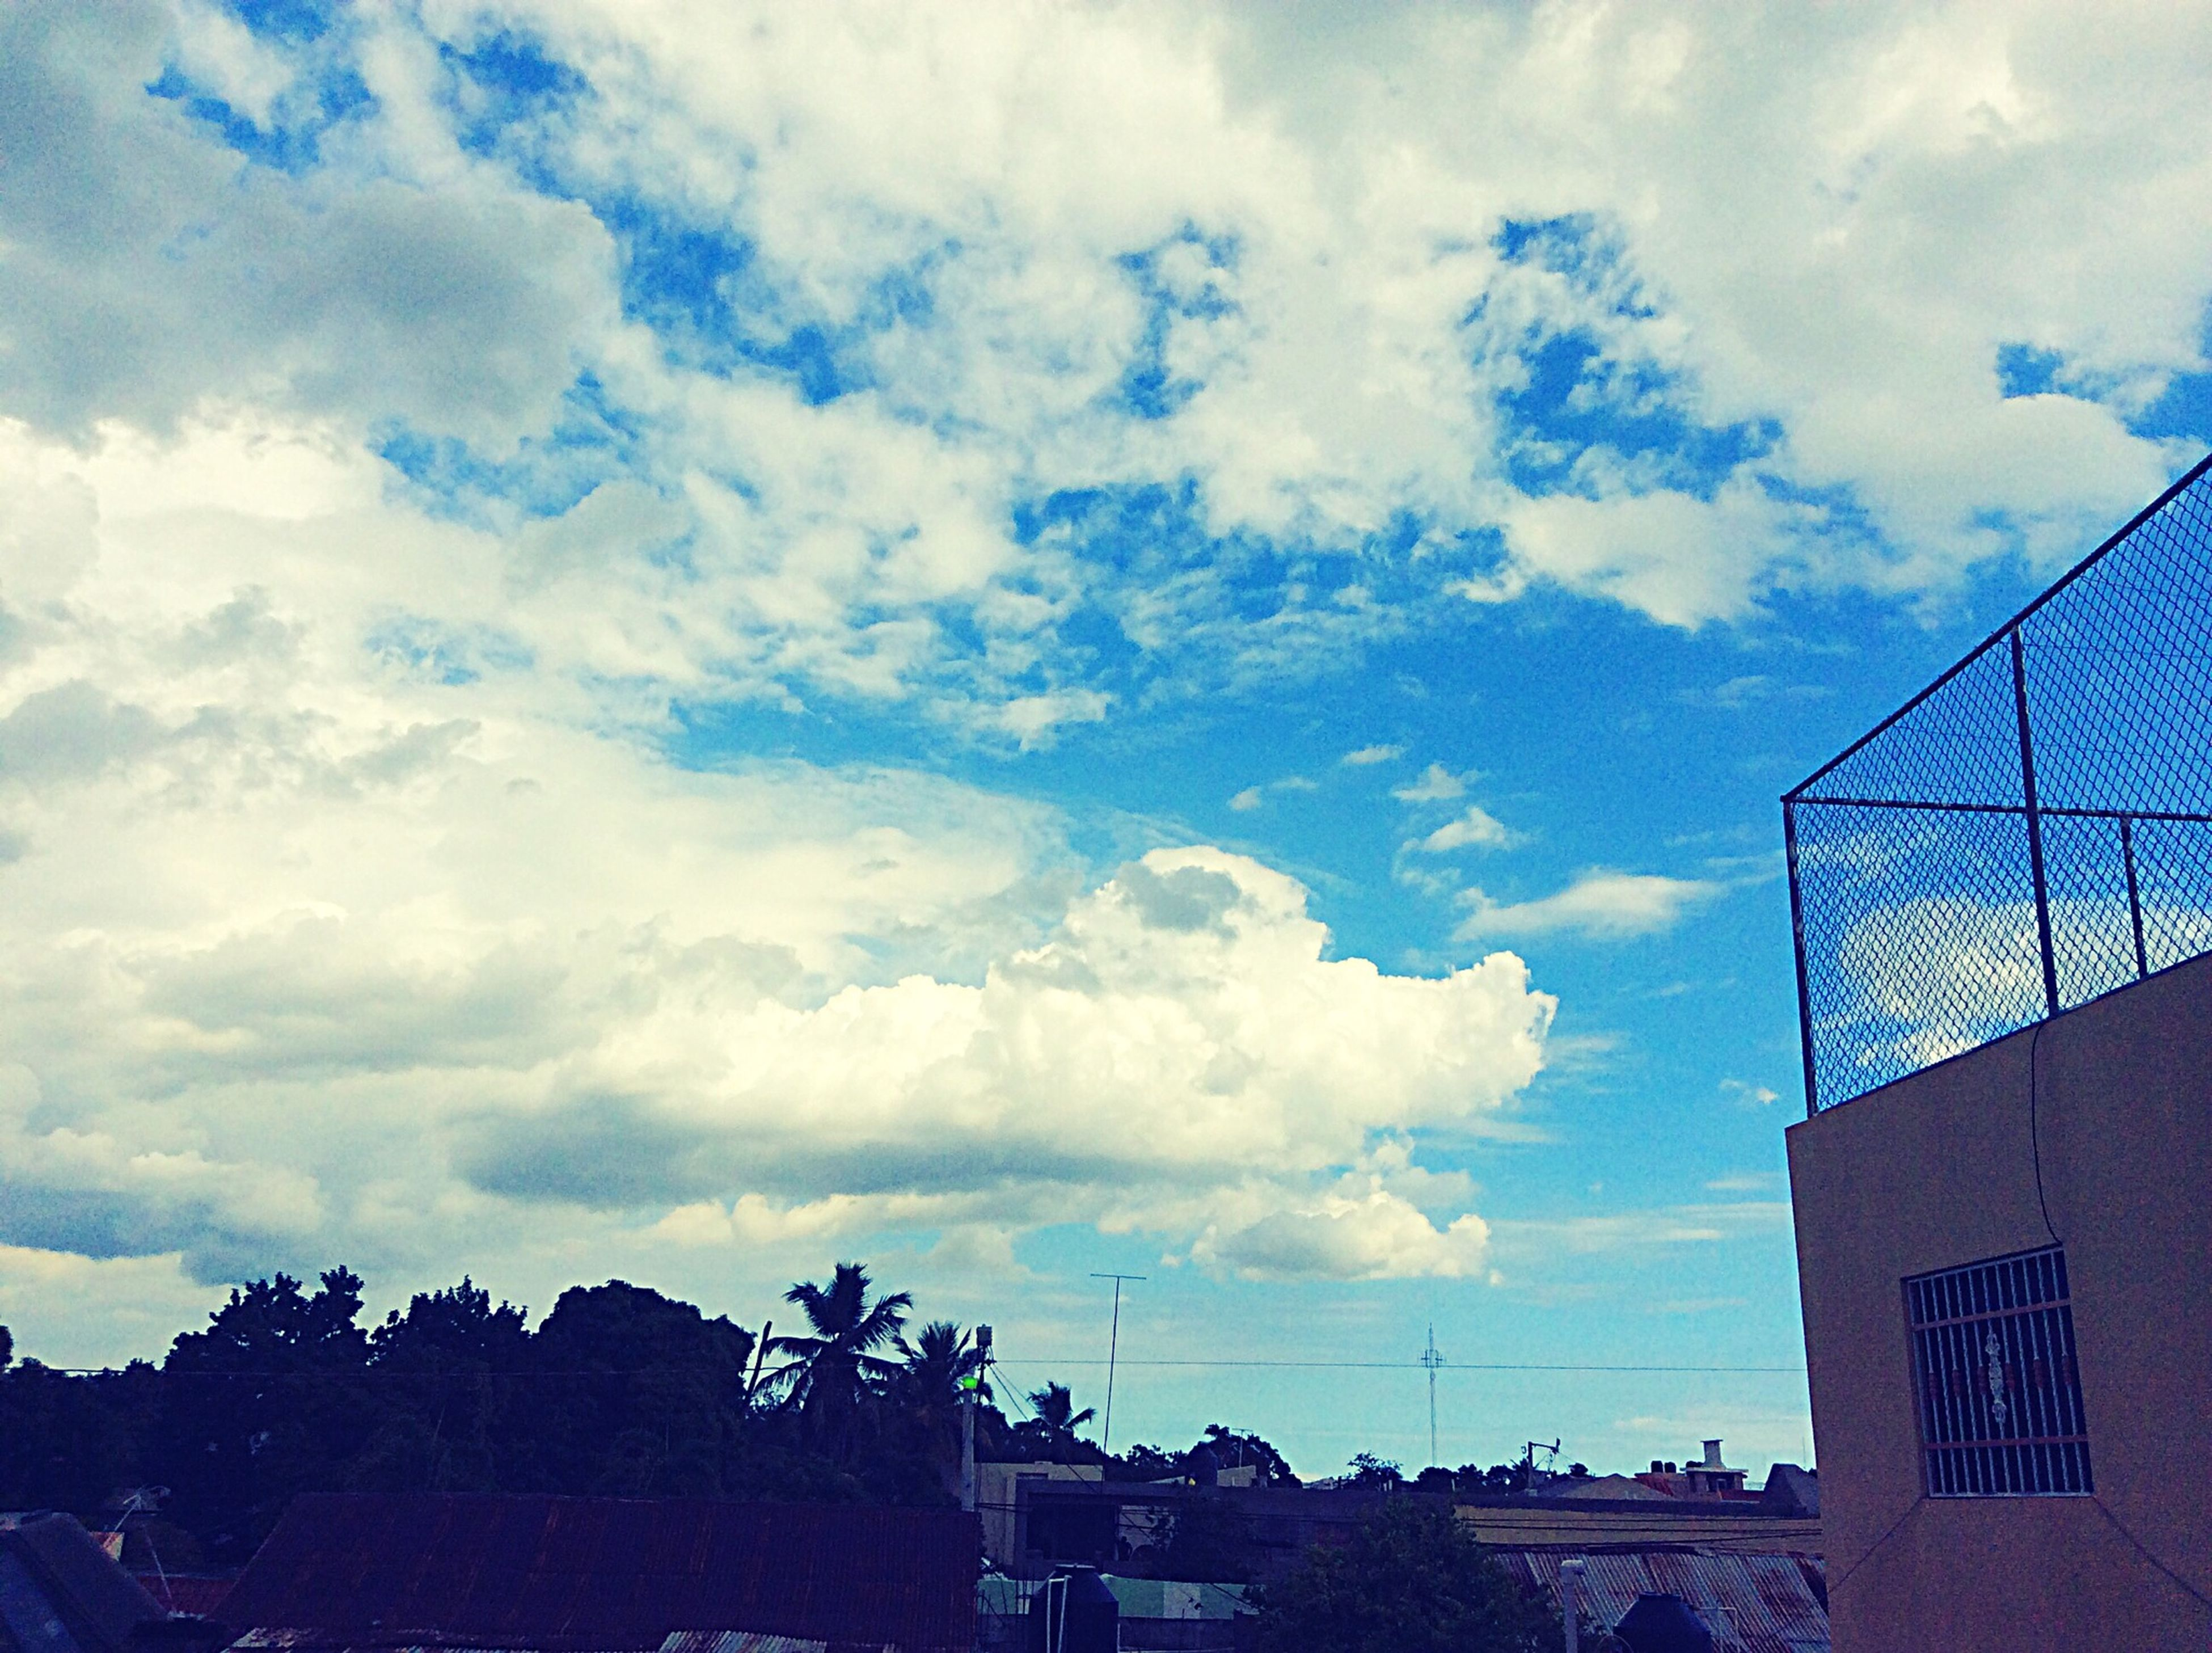 sky, building exterior, architecture, built structure, cloud - sky, low angle view, cloudy, cloud, building, city, day, outdoors, residential structure, house, residential building, no people, weather, nature, blue, sunlight